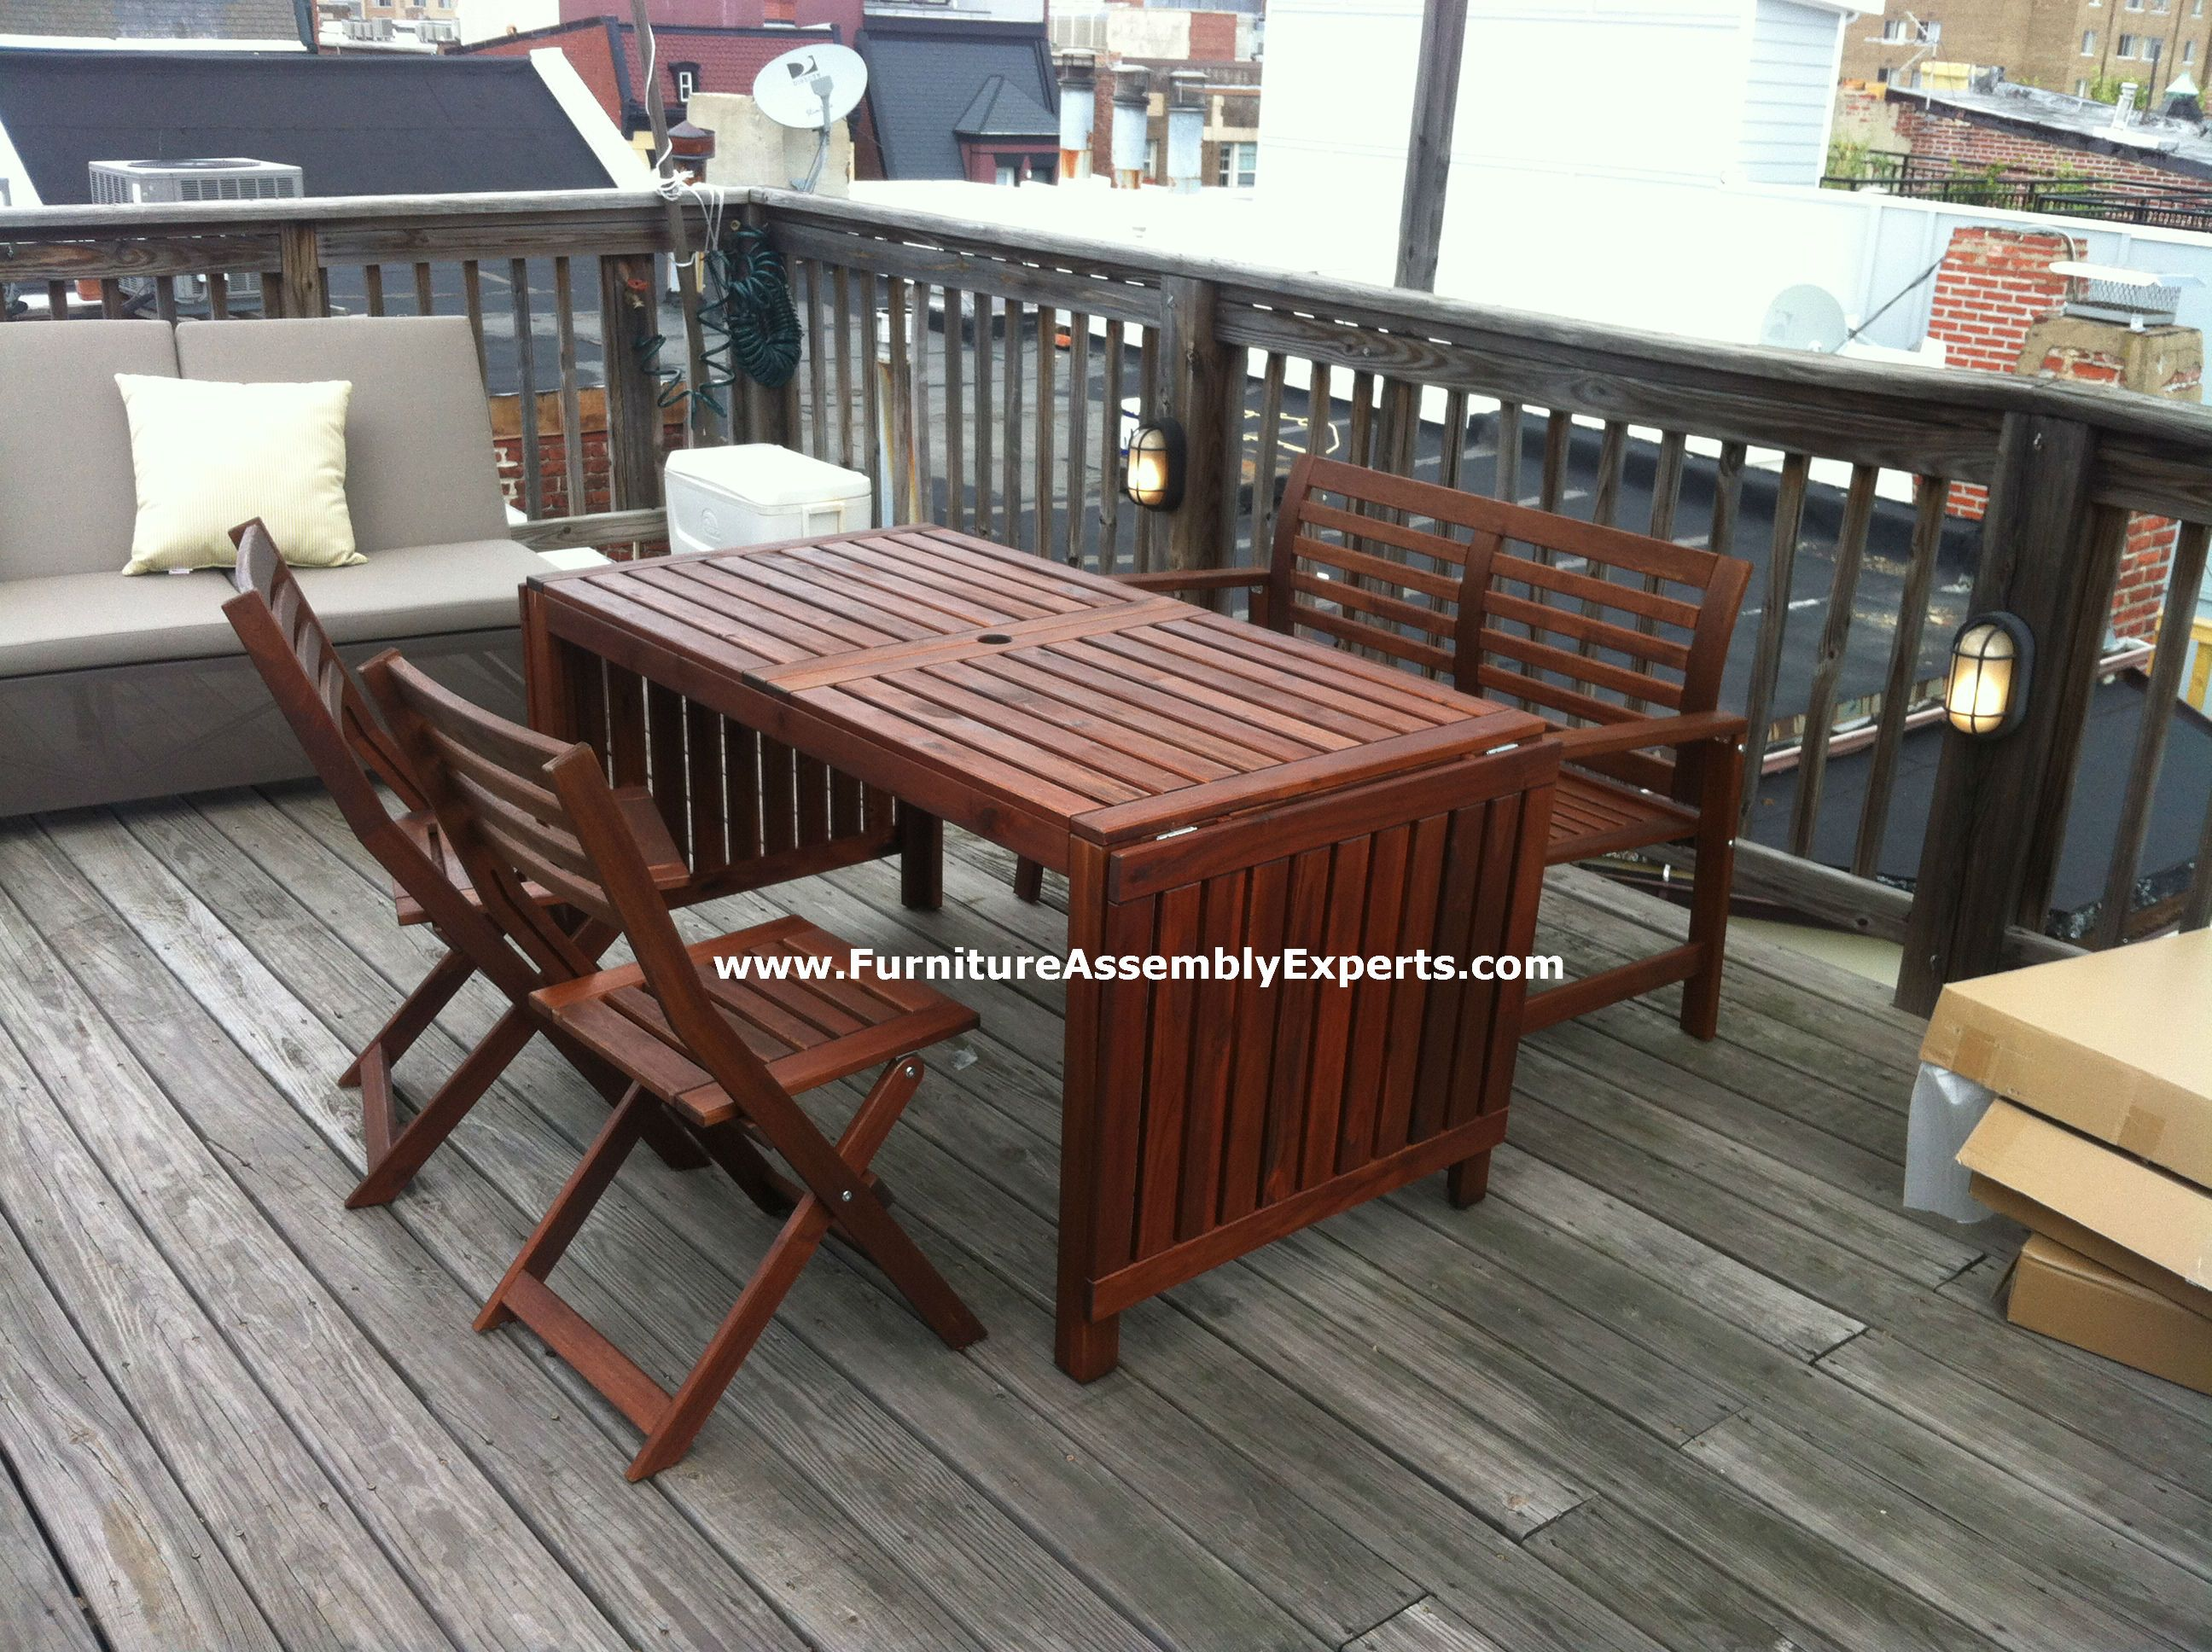 ikea applaro patio table, bench and 2 chairs assembled in ...